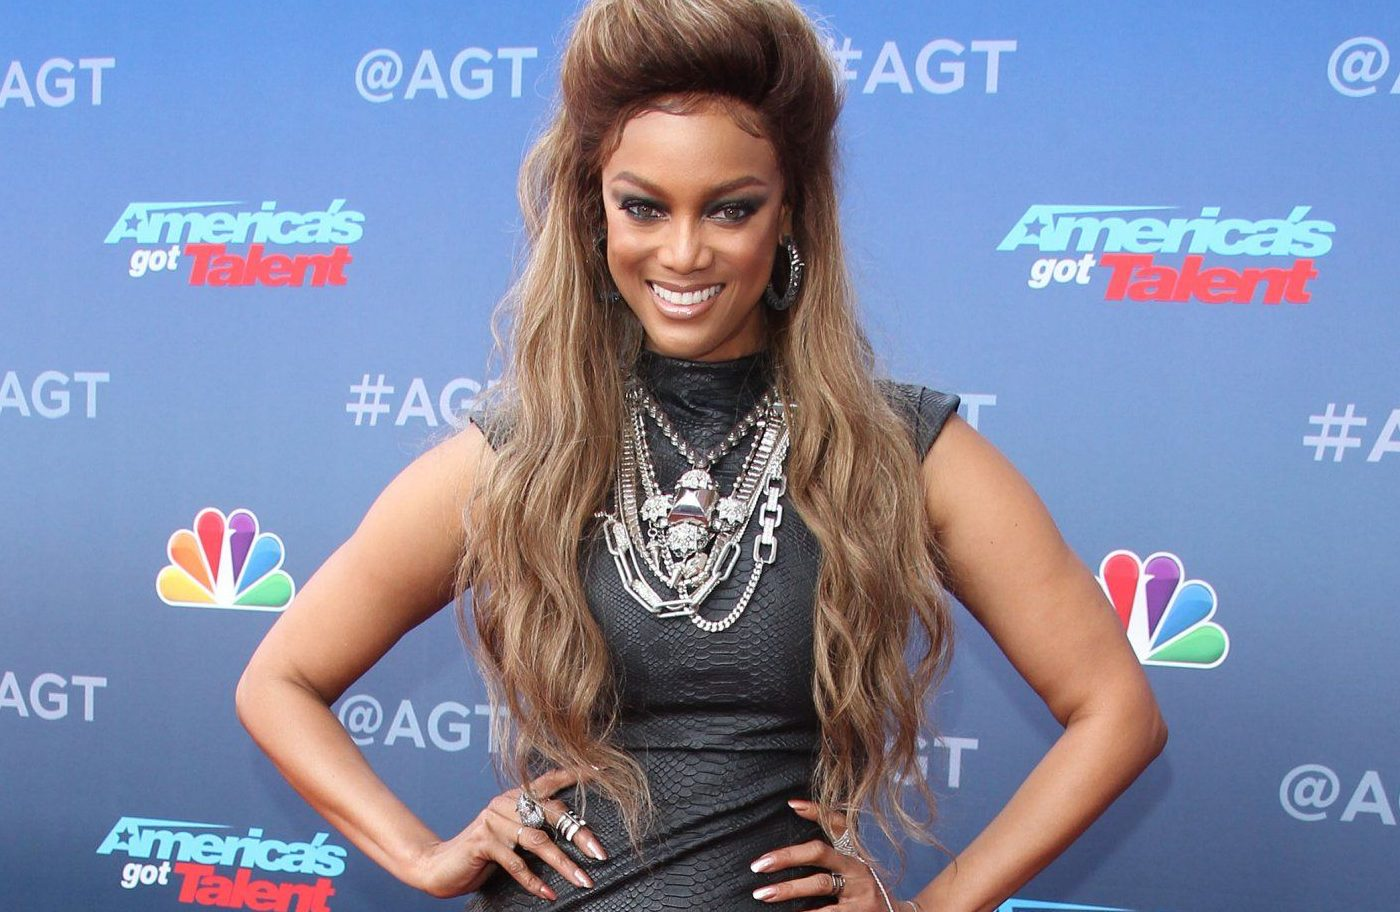 Tyra Banks reveals she had a nose job: 'I feel I have a responsibility to tell the truth'